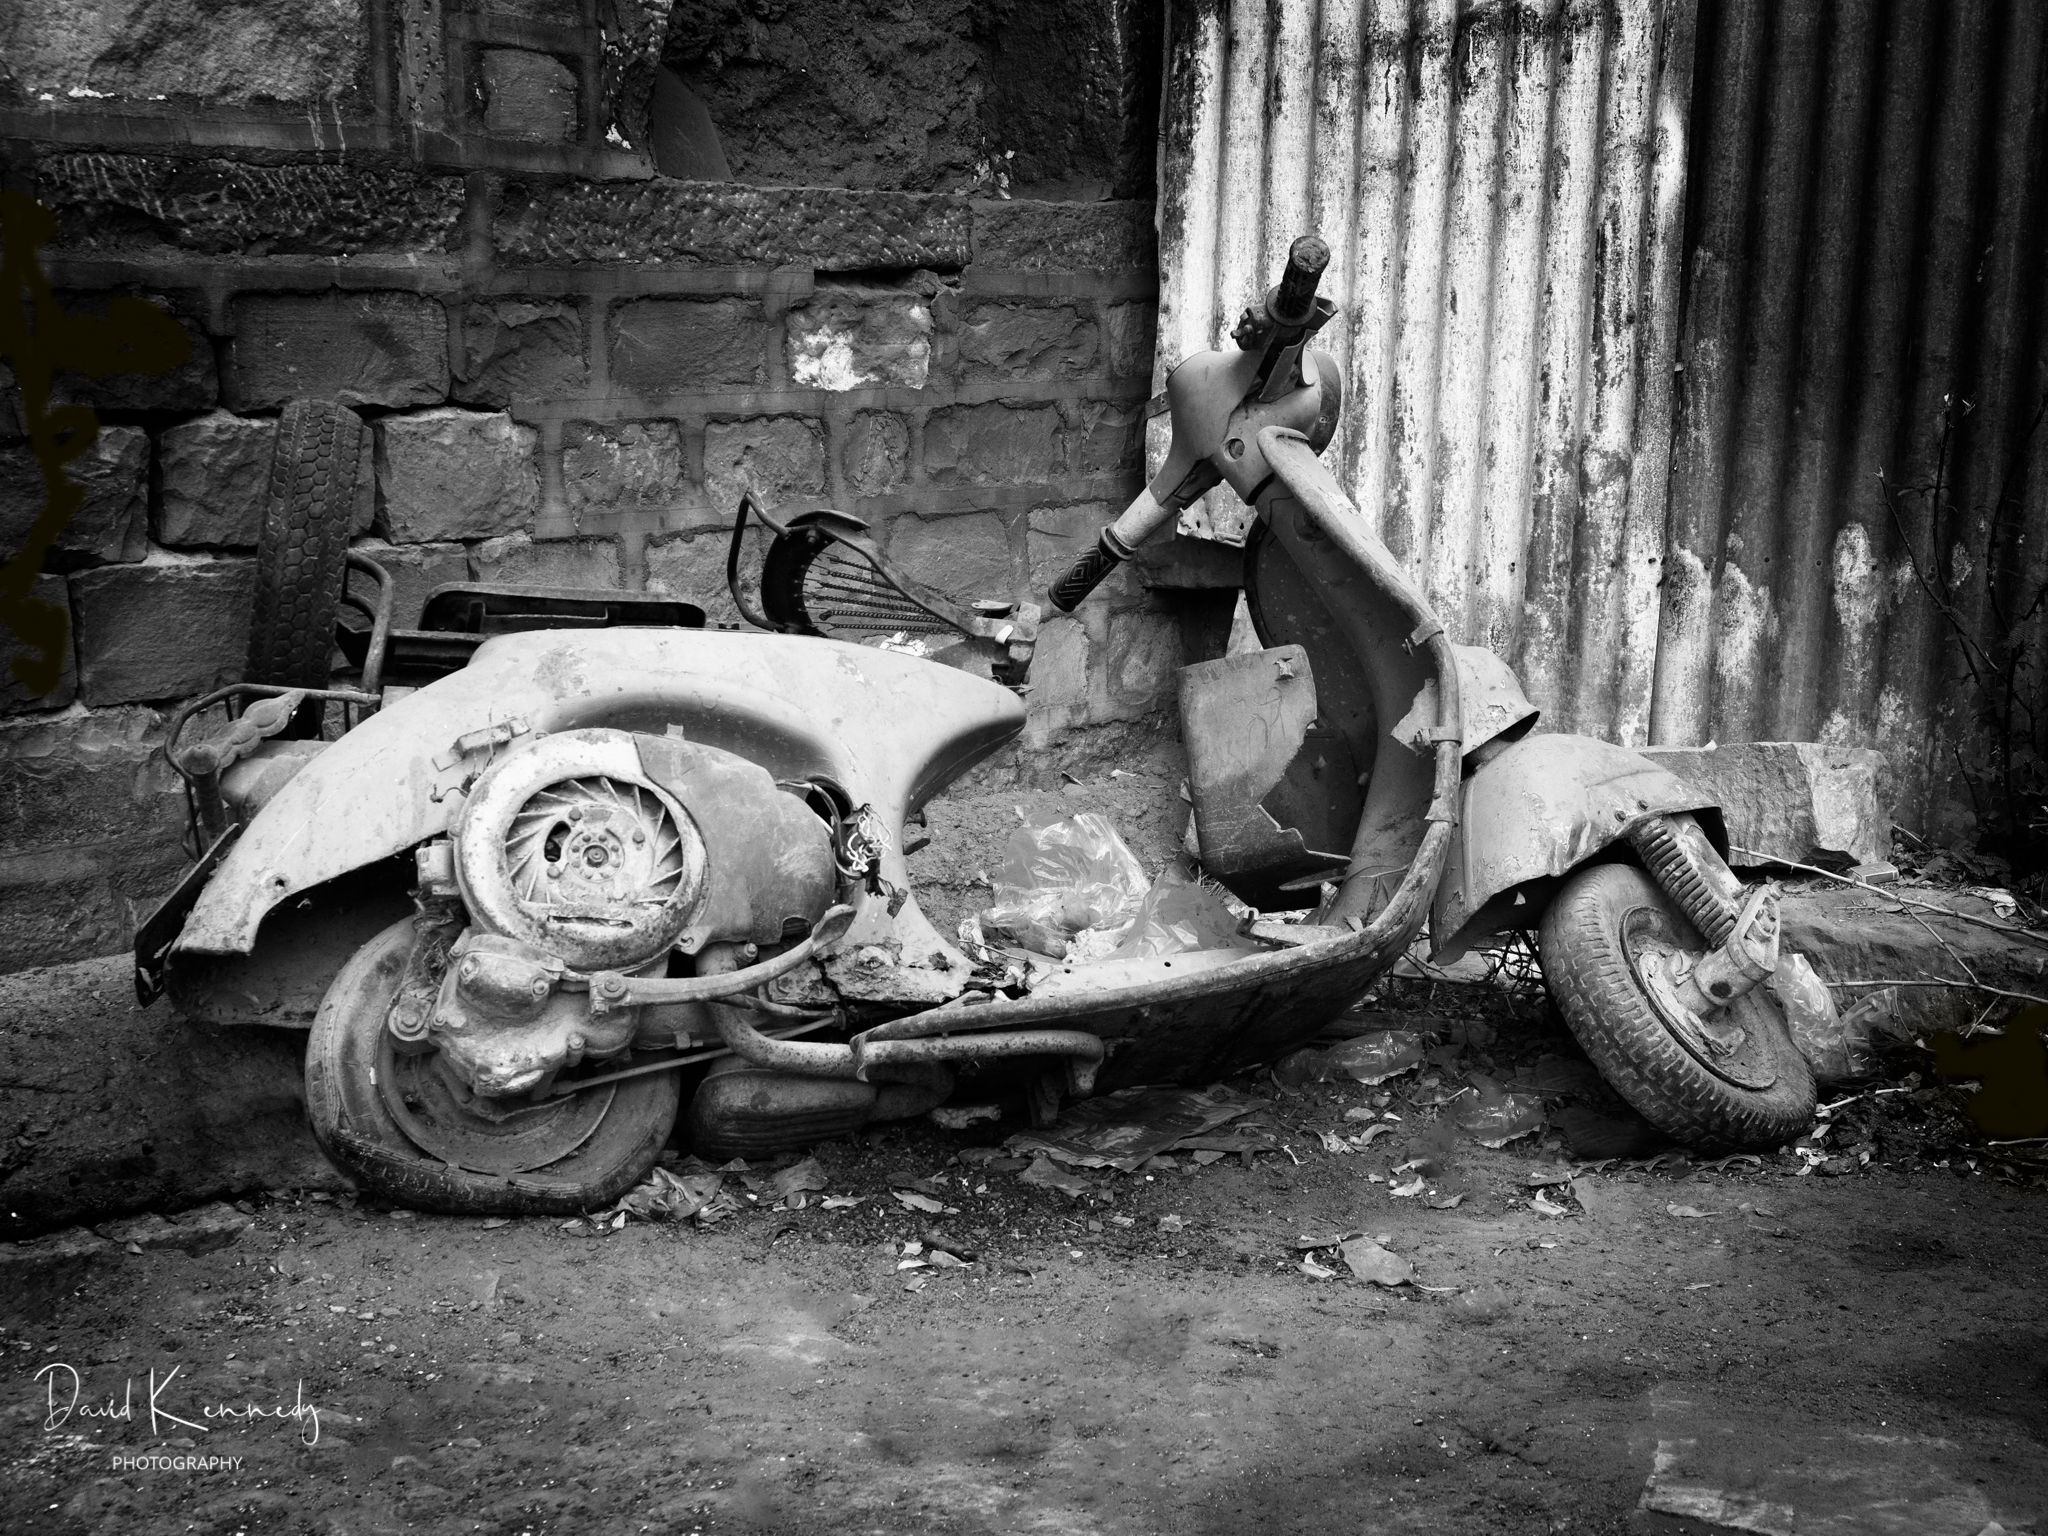 Abandoned and wrecked scooter